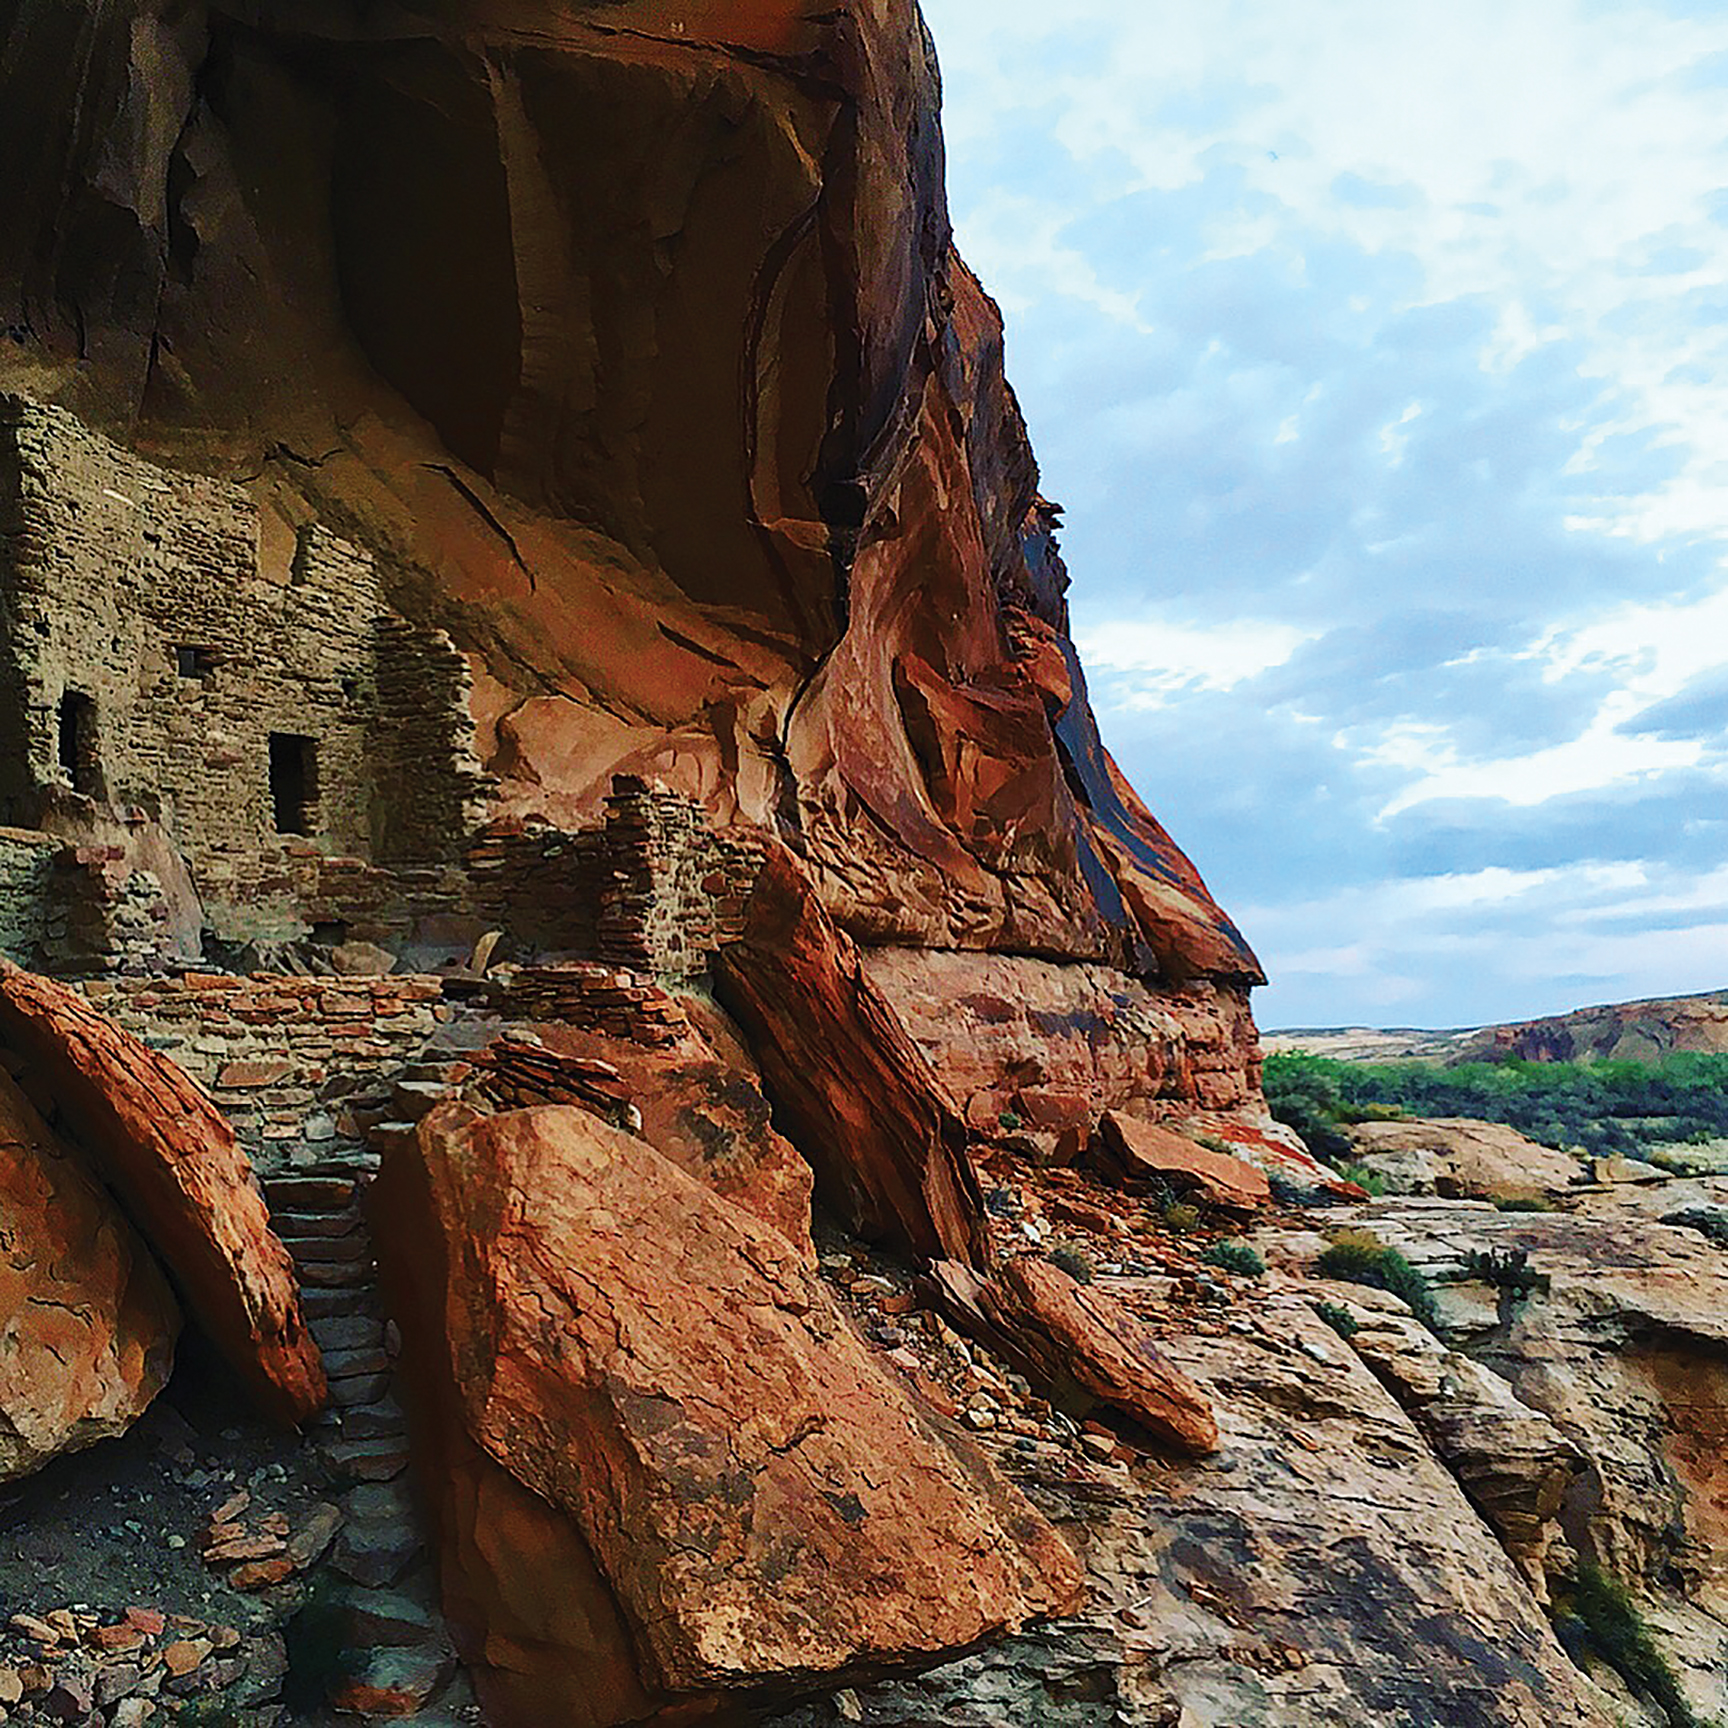 Ruins along the San Juan River. Photo by Ashley Carruth